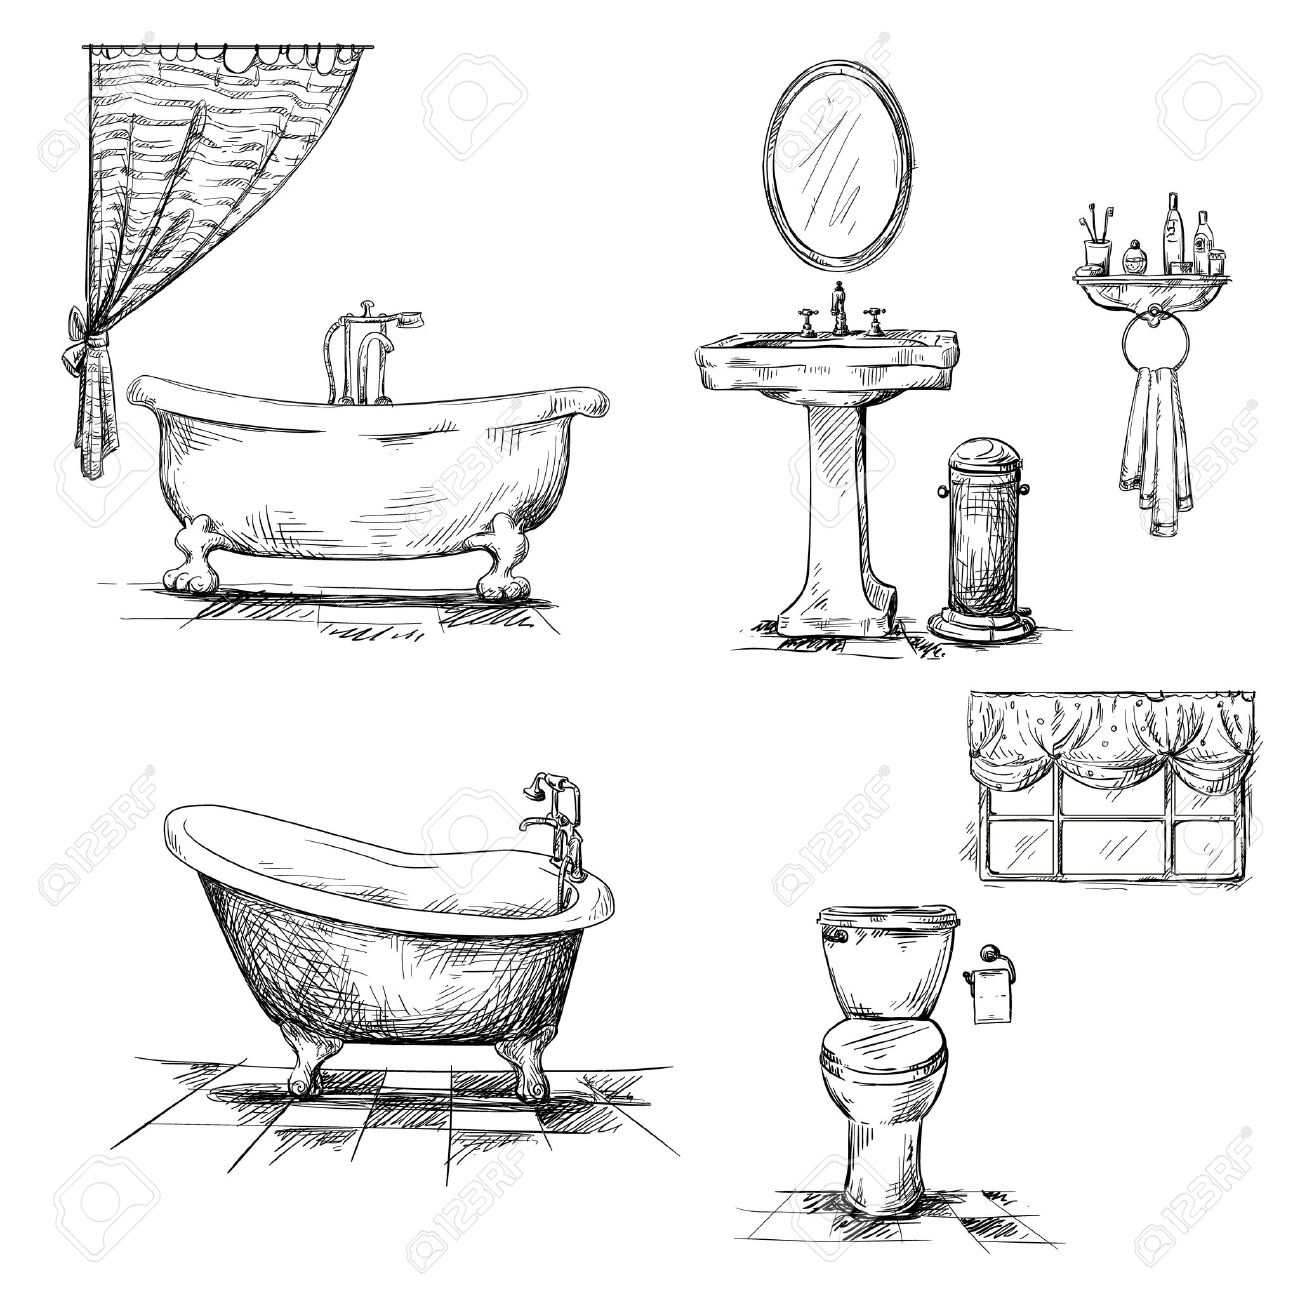 Bathroom sink drawing - Bathroom Sink Bathroom Interior Elements